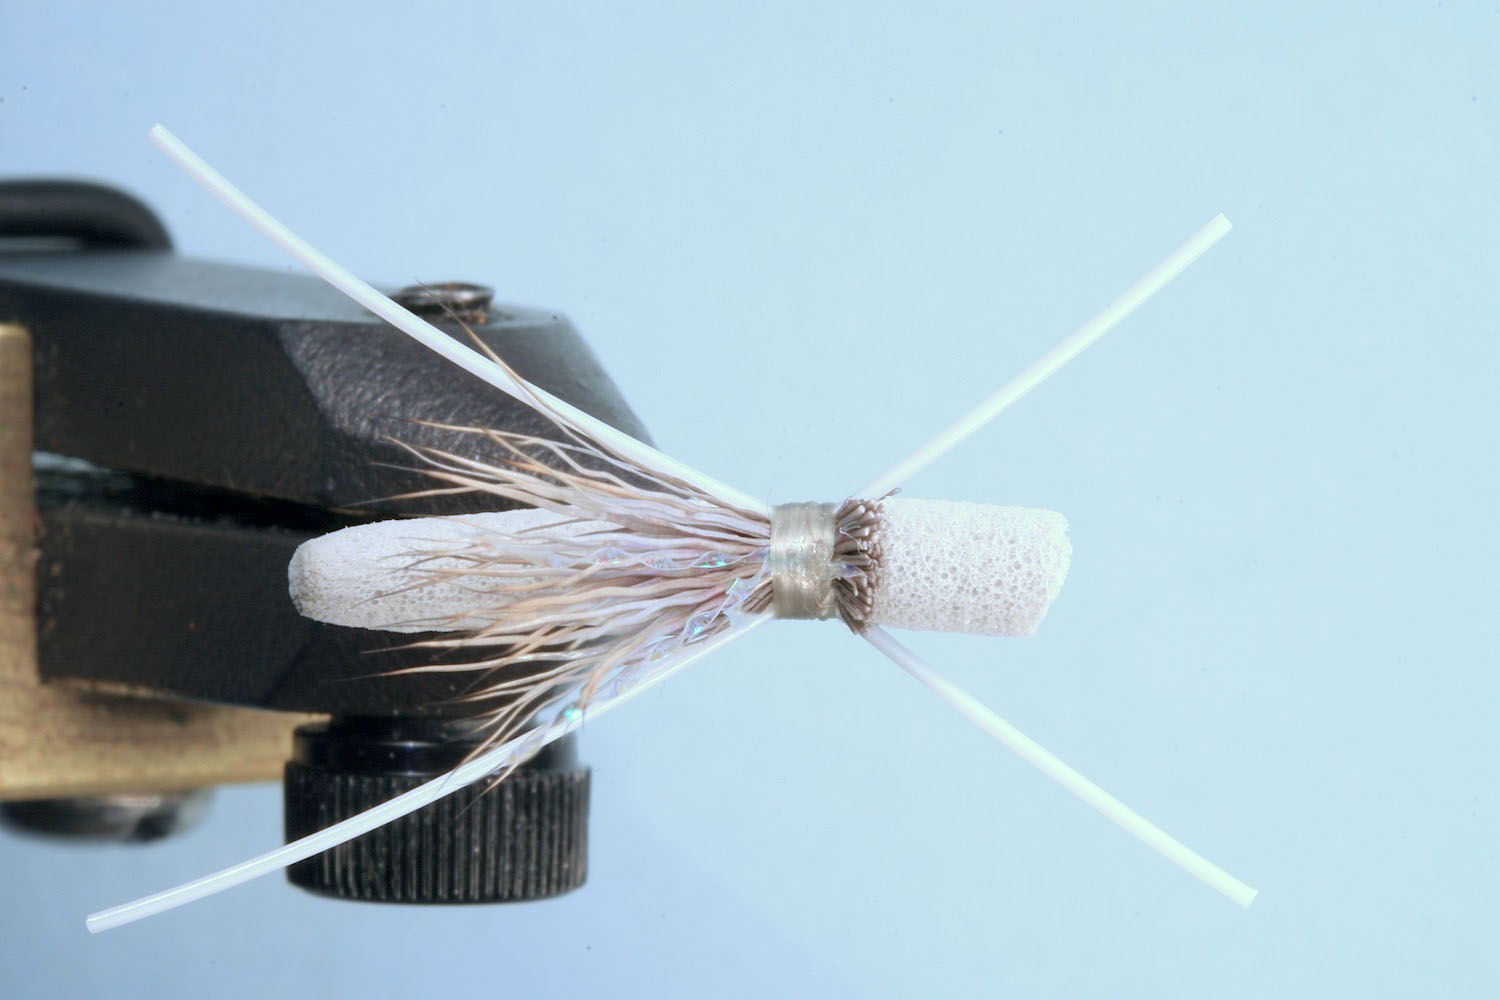 Showing step 5 of tying sequence for hot foam hopper fly pattern